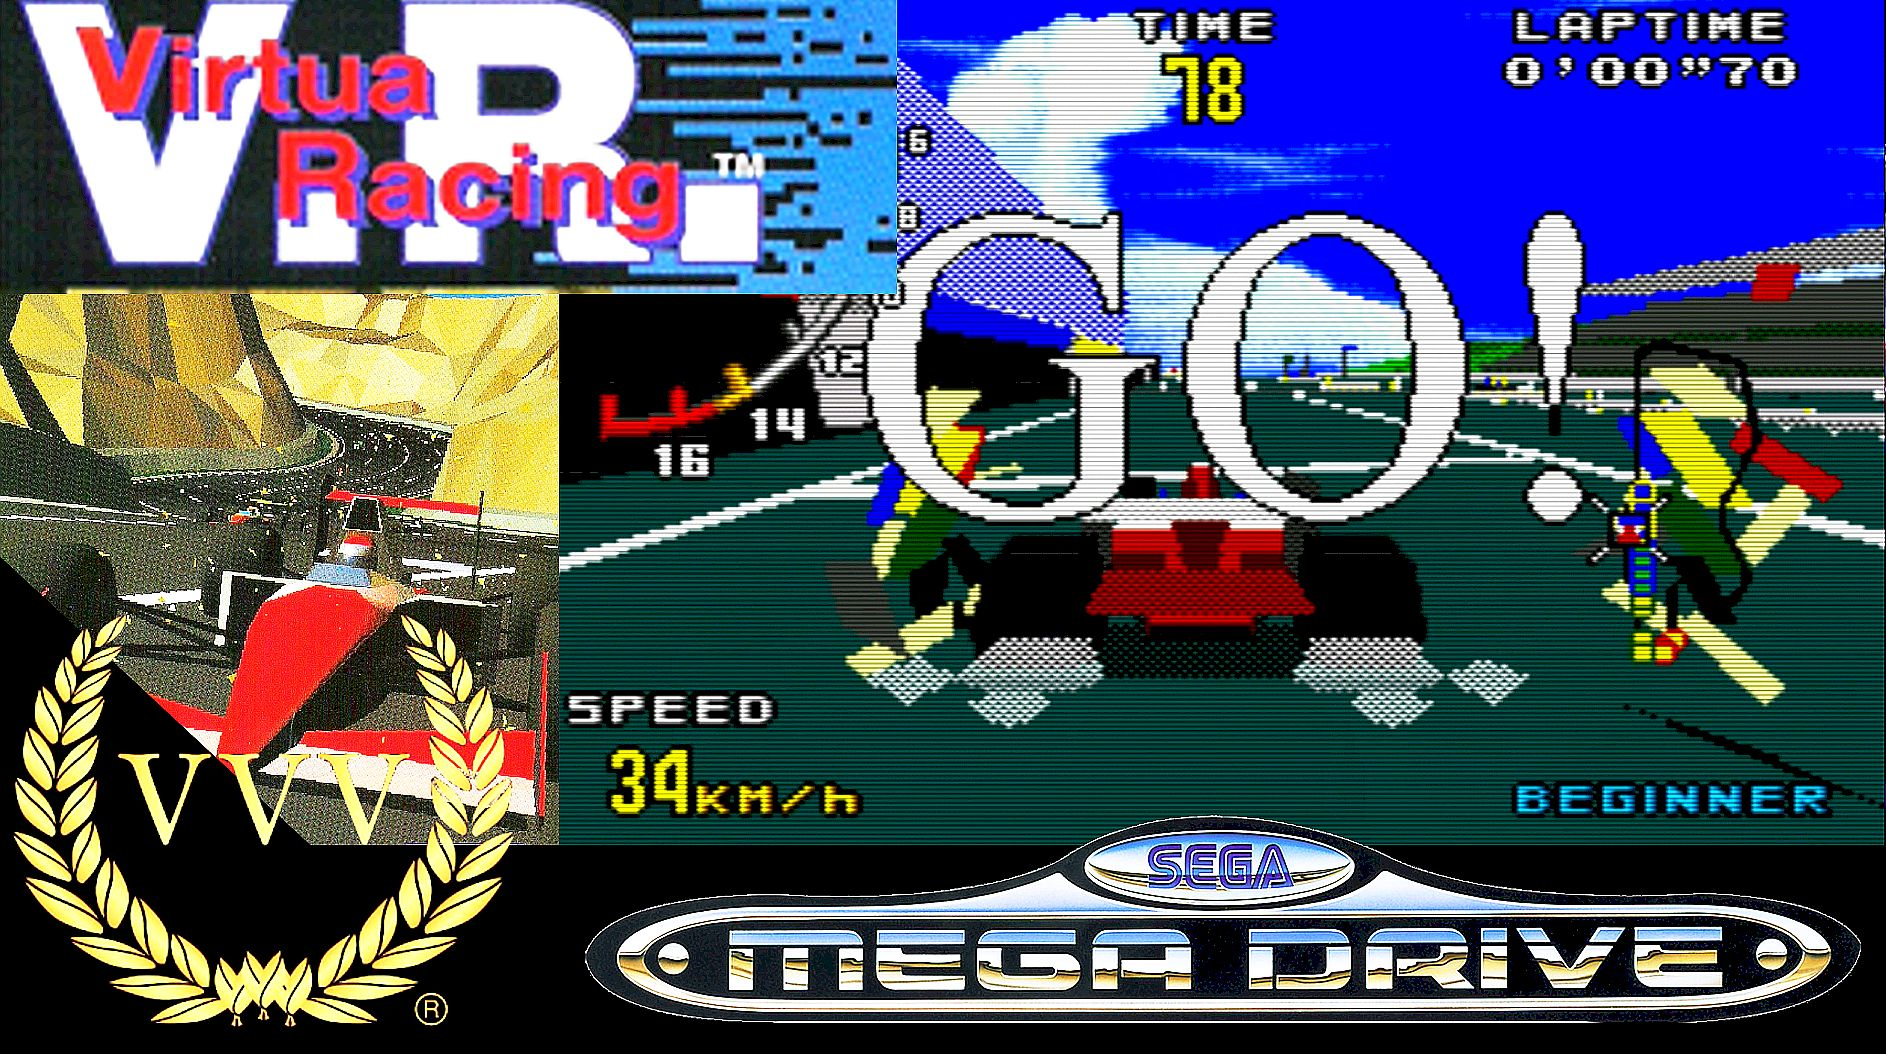 Playing 1994's Virtua Racing on the Mega Drive